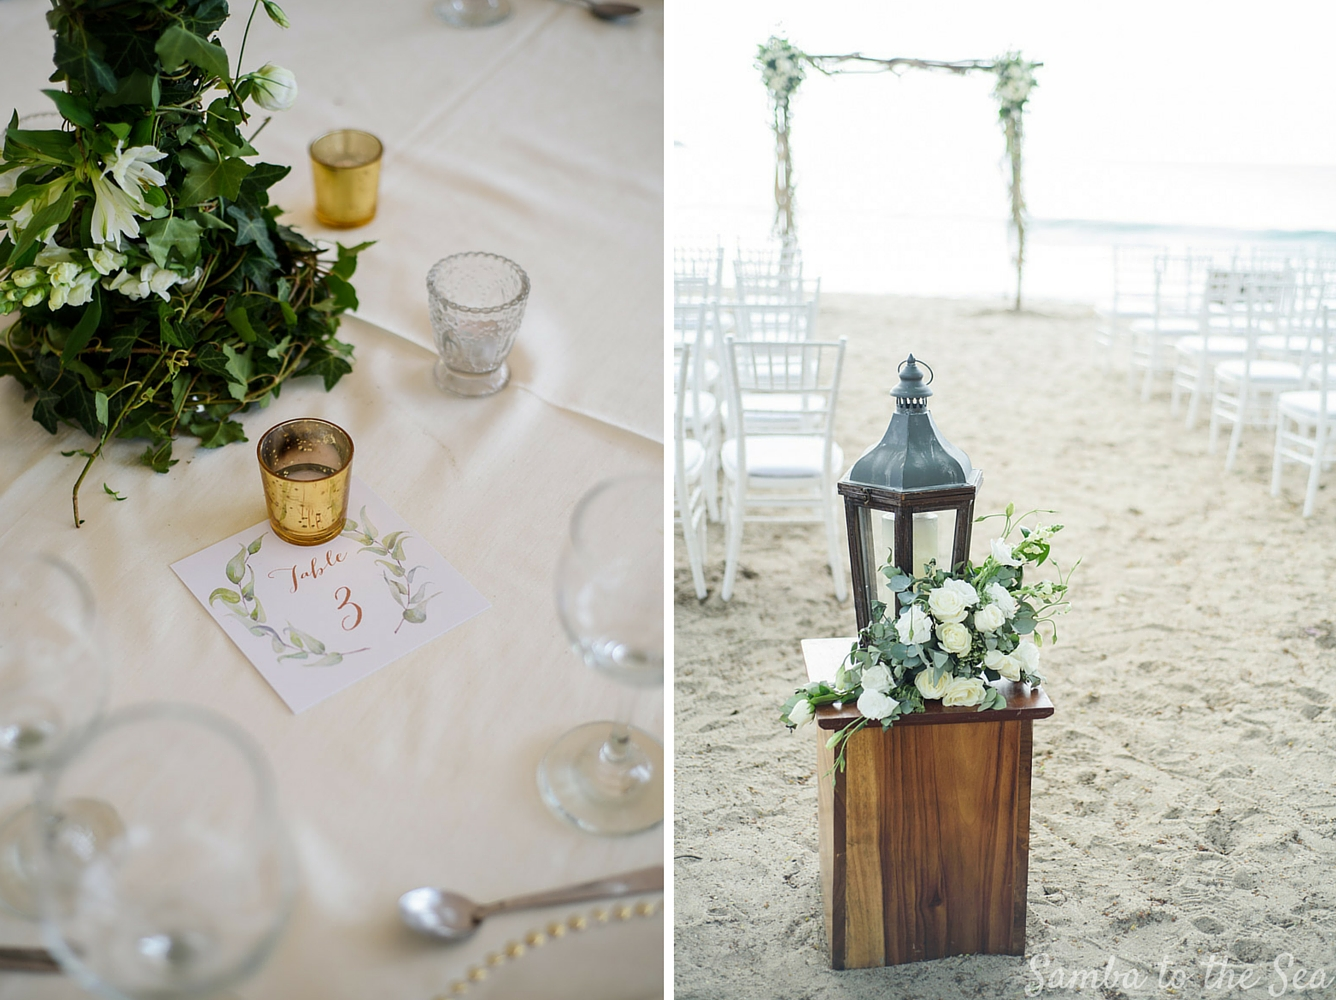 Details at Tamarindo wedding by wedding planner Mil Besos. Photographed by Kristen M. Brown, Samba to the Sea Photography.